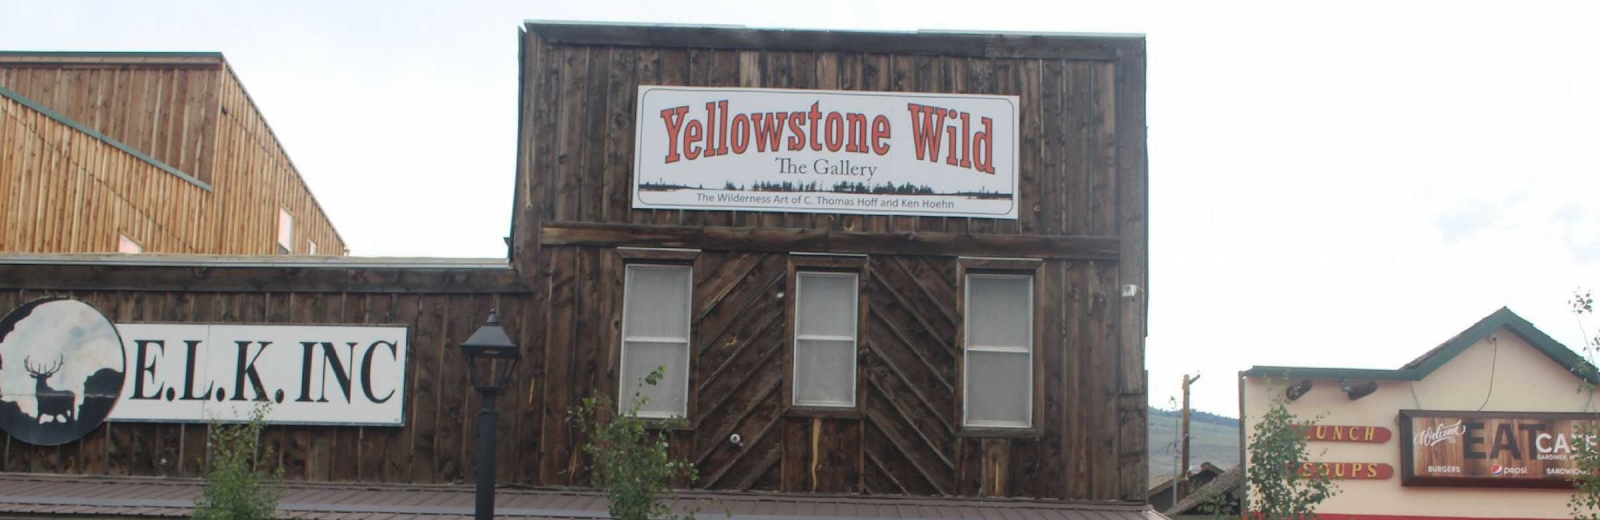 Yellowstone Wild The Gallery